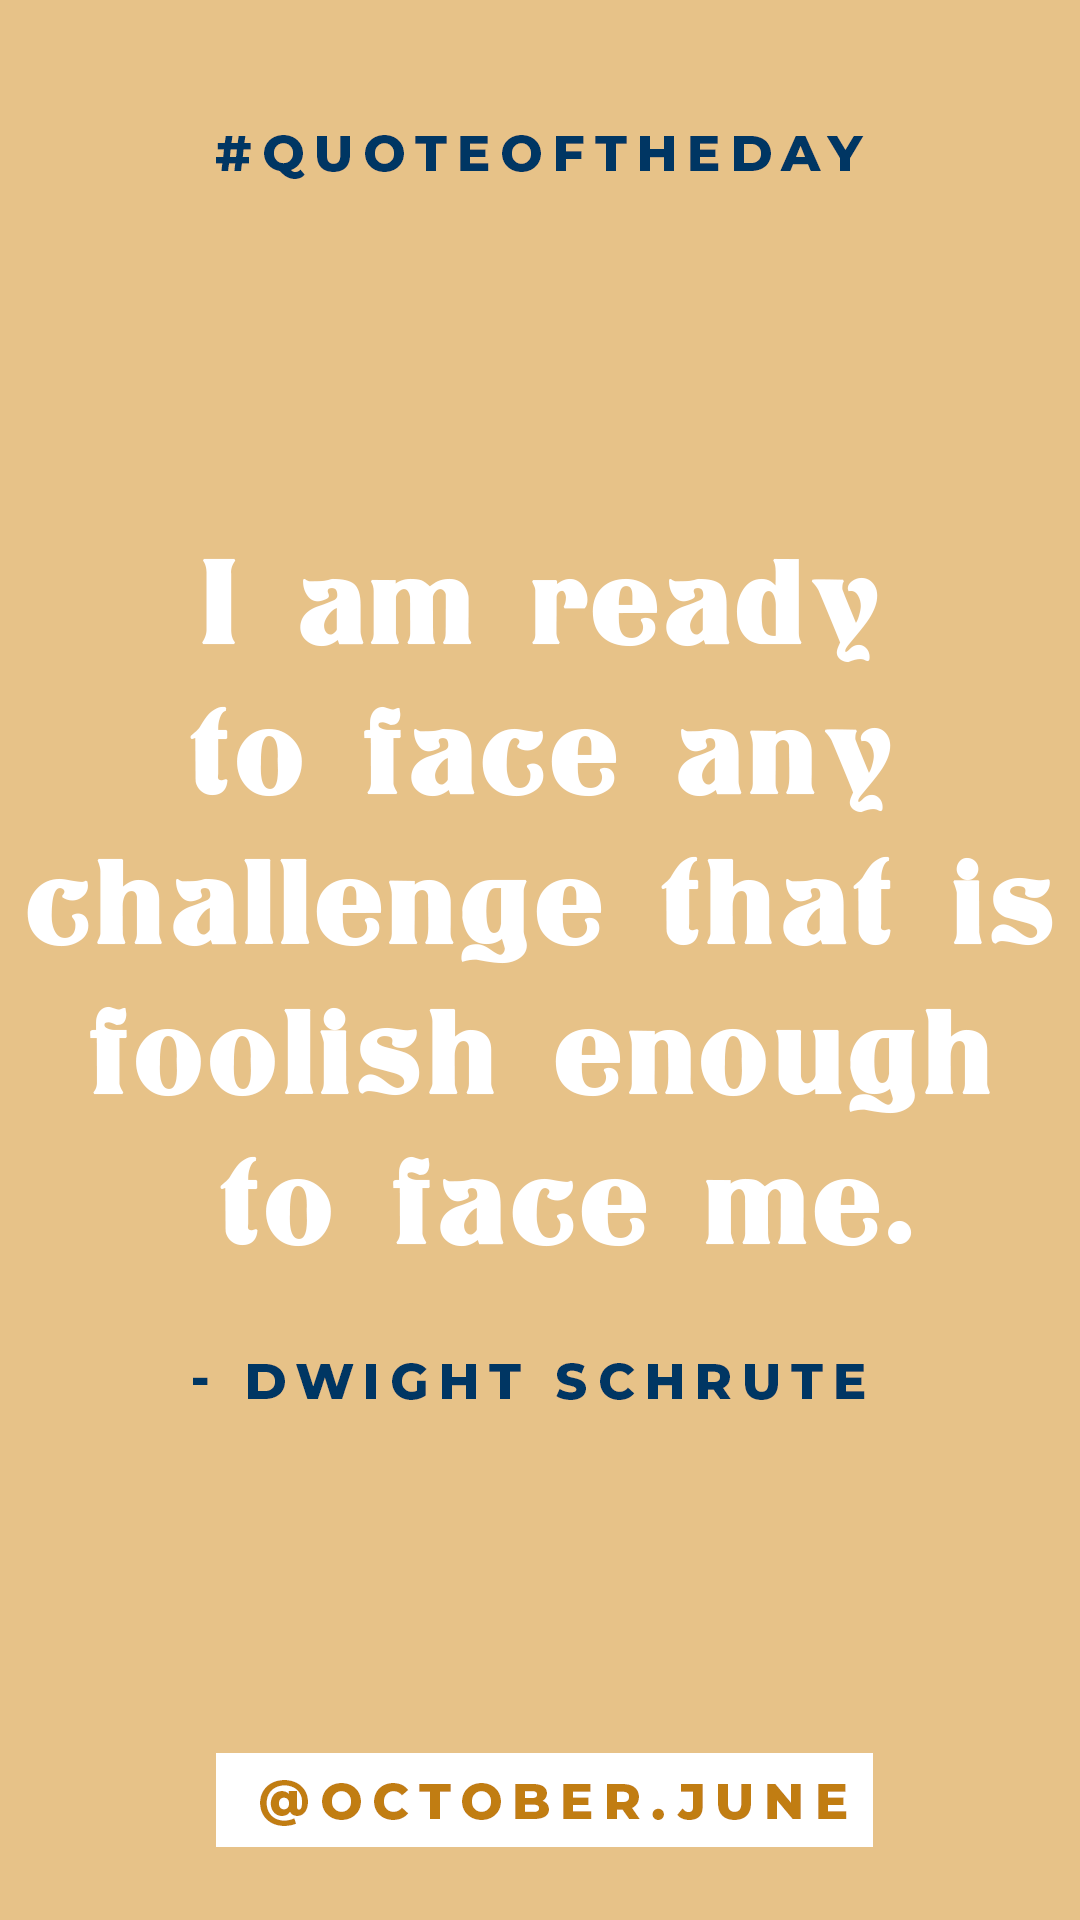 Dwight Schrute The Office Inspirational Quotes Inspirational